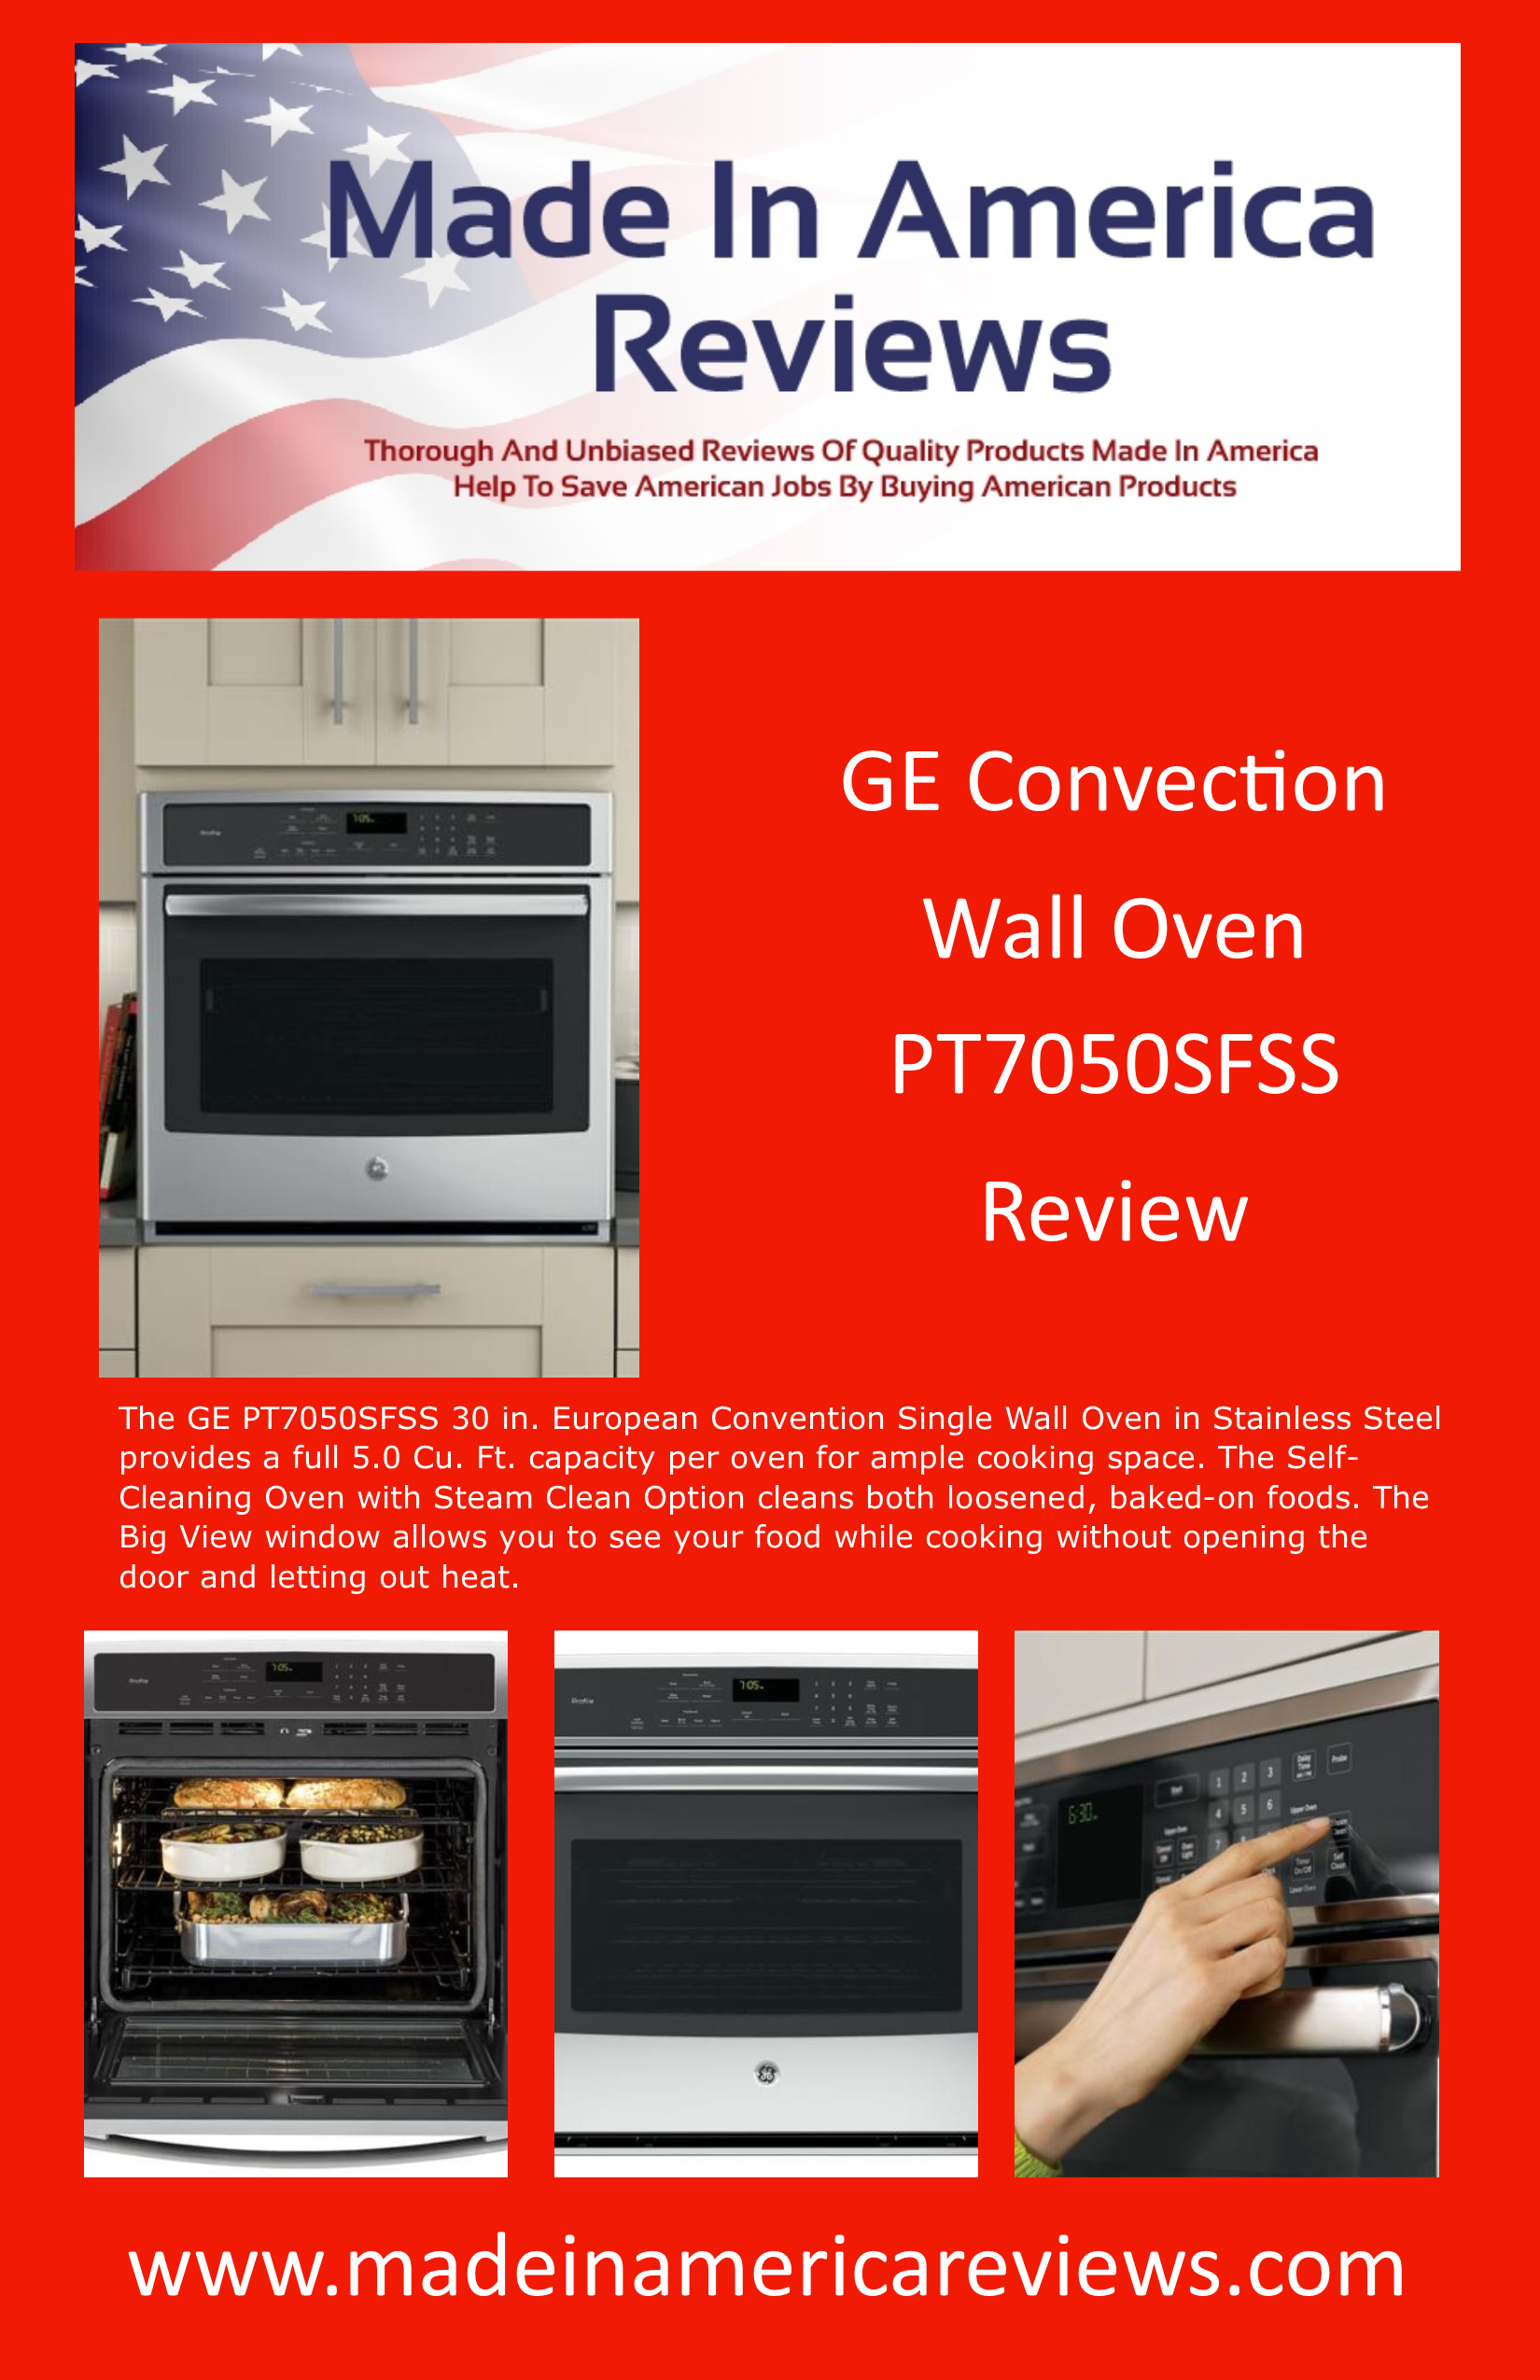 We Provide A Thorough And Honest Review Of One Of The Ge Wall Glamorous Honest Kitchen Reviews Inspiration